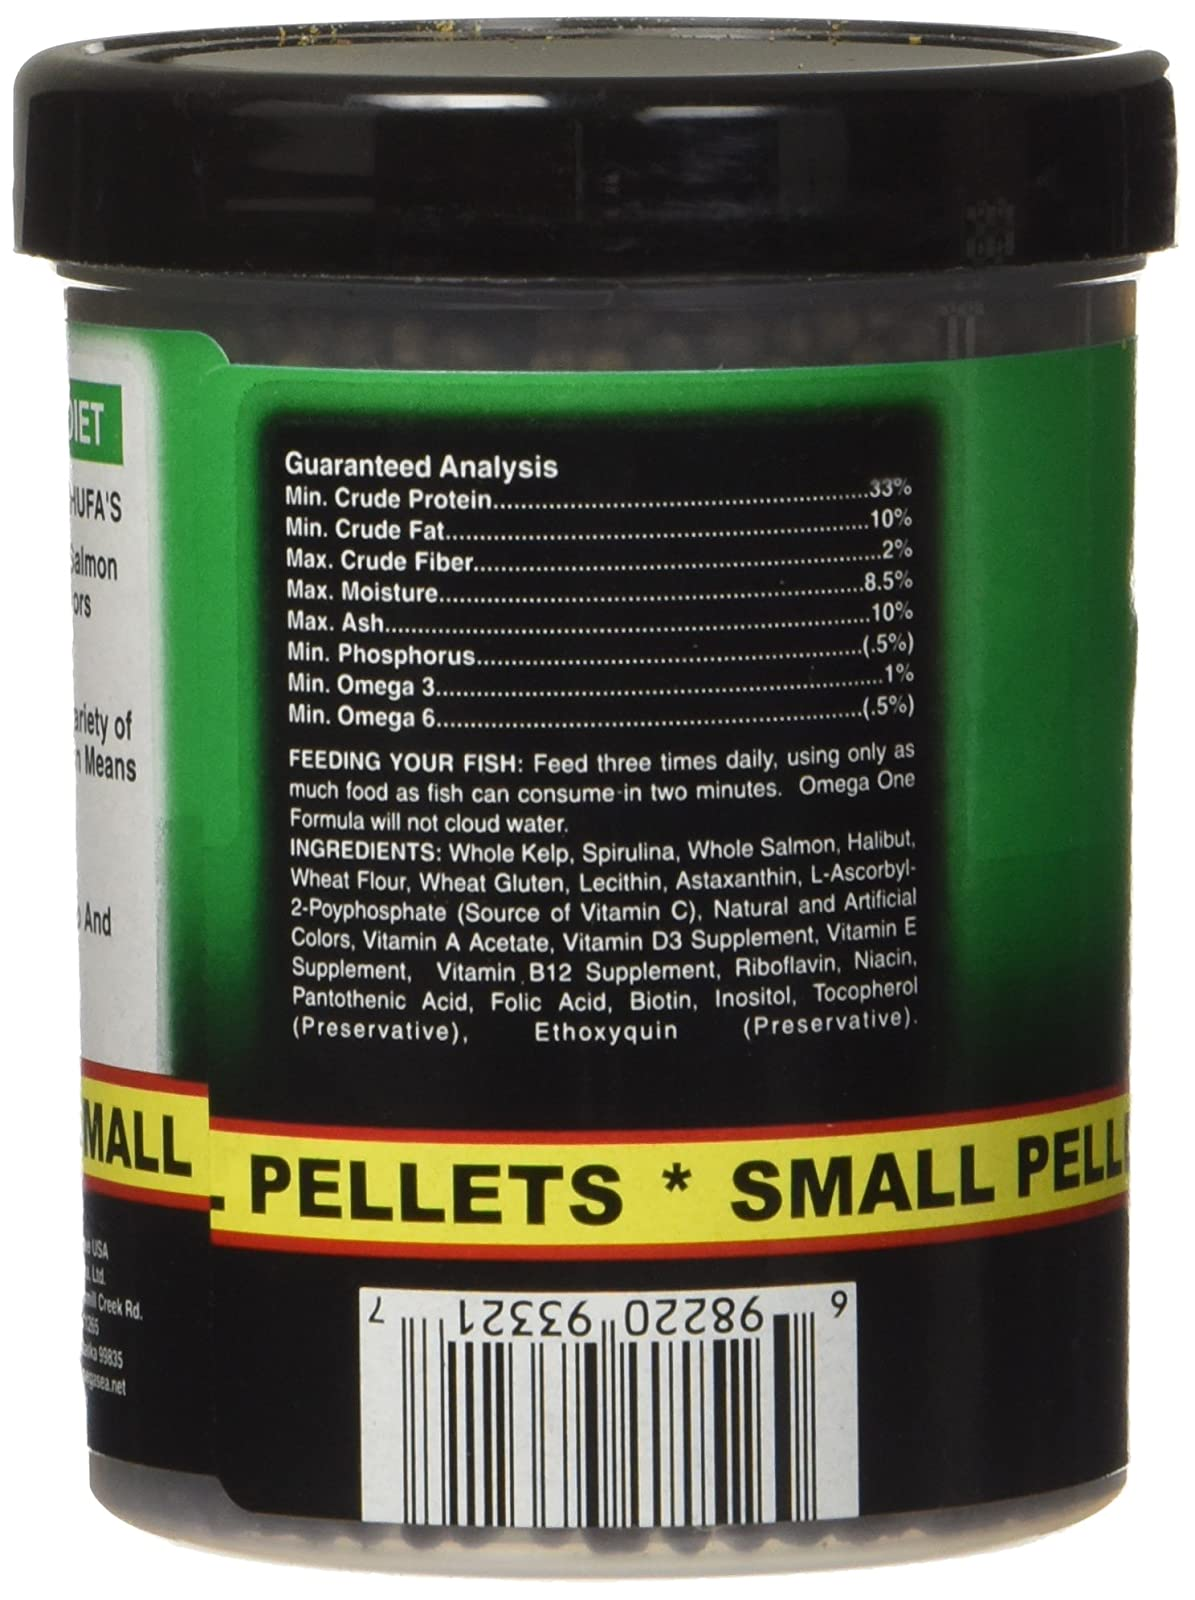 Omega One Super Veggie Pellets Small 3.5oz SHOMHNK004 - 3